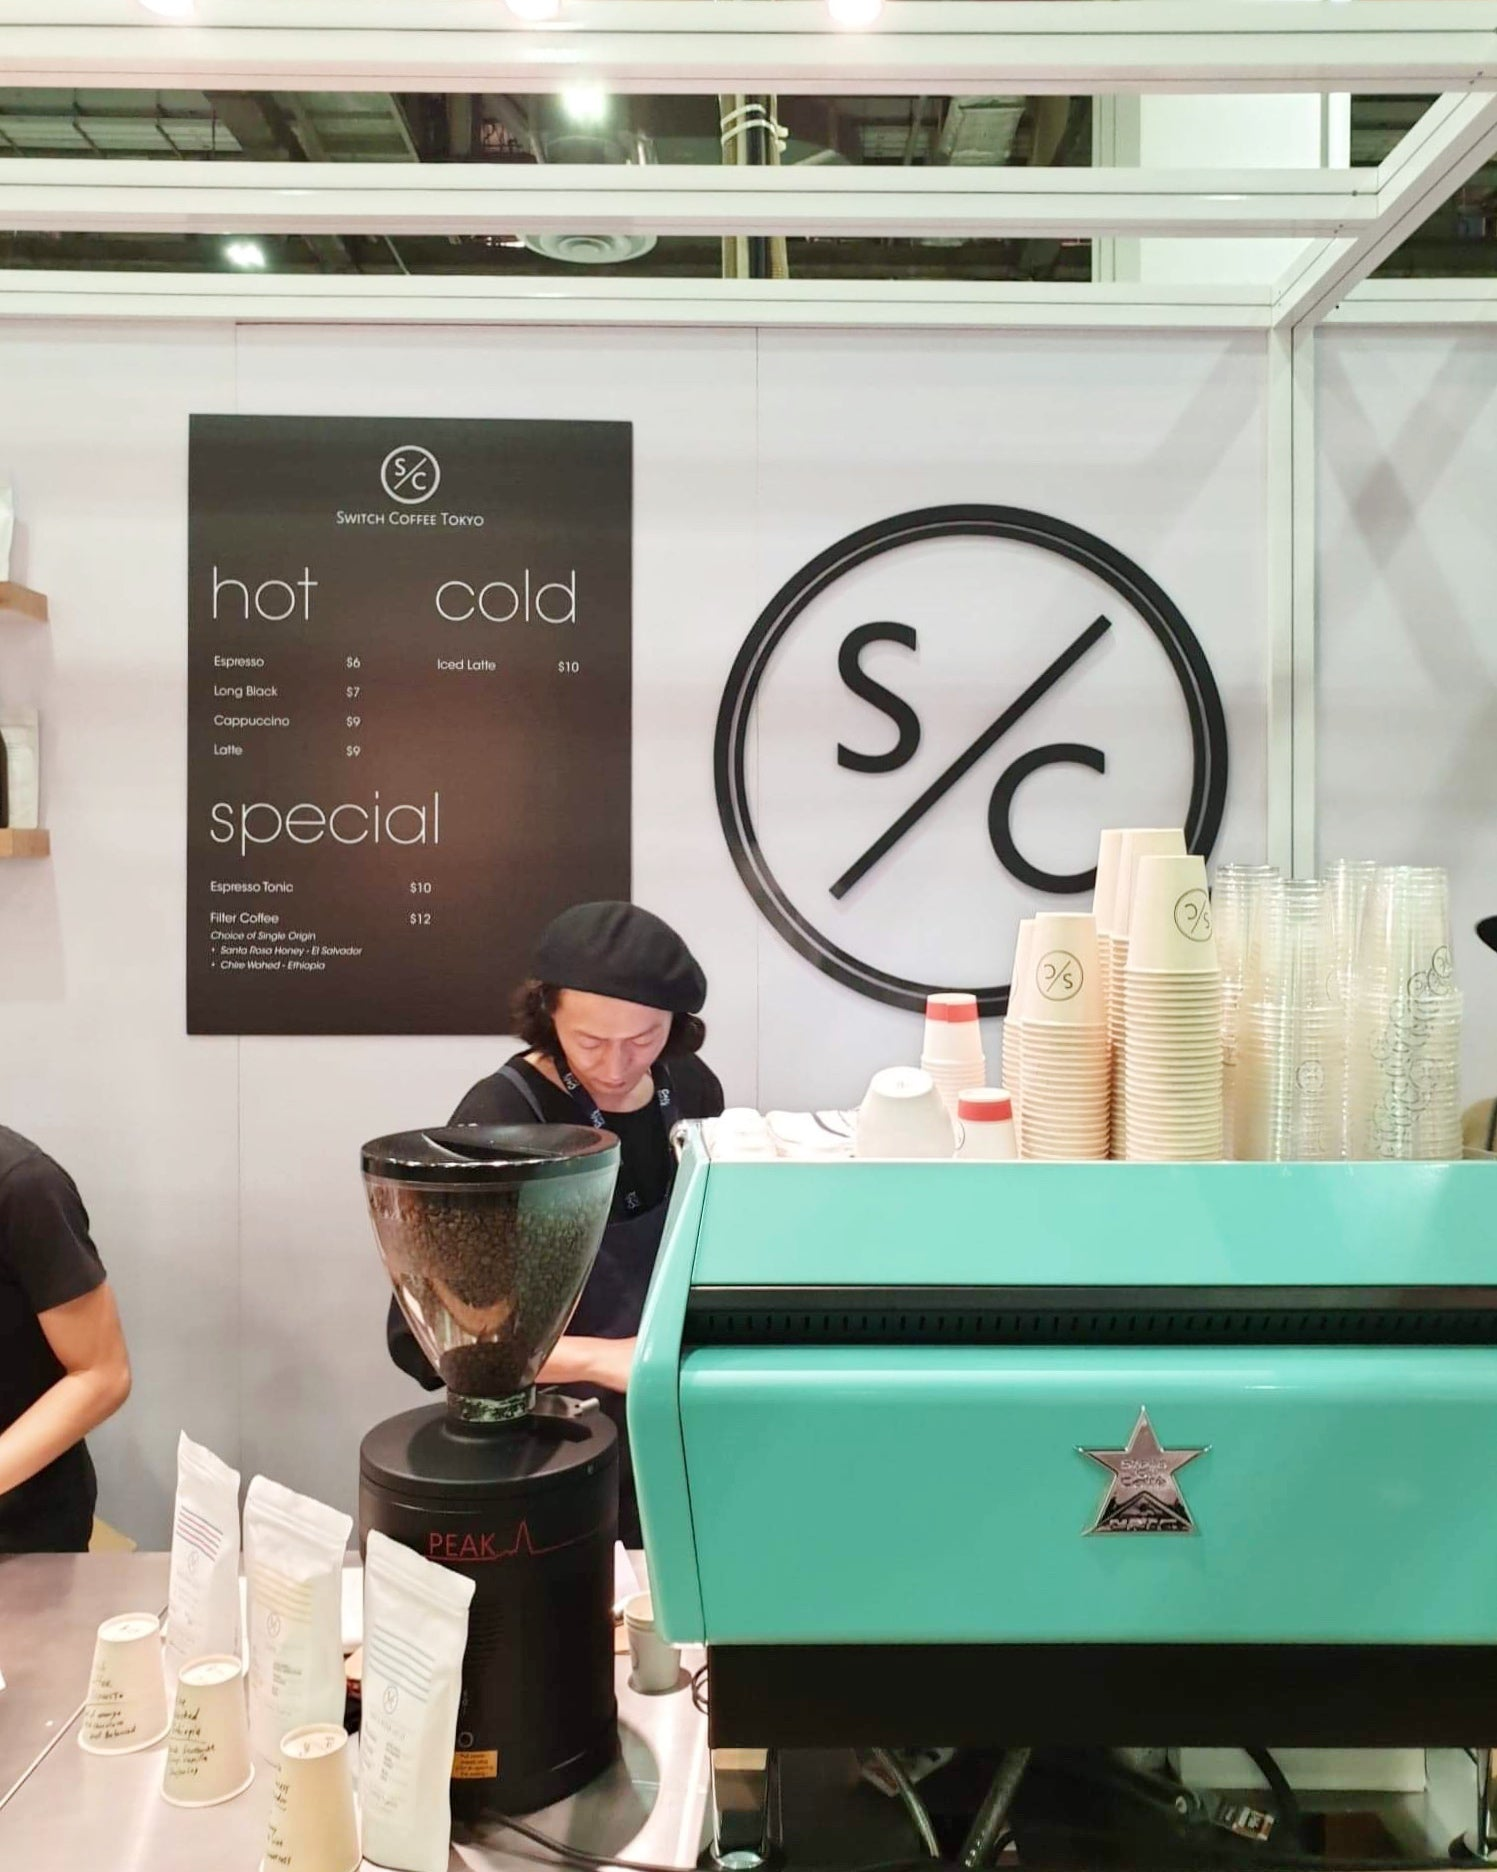 Switch Coffee Coffee Culture 2019